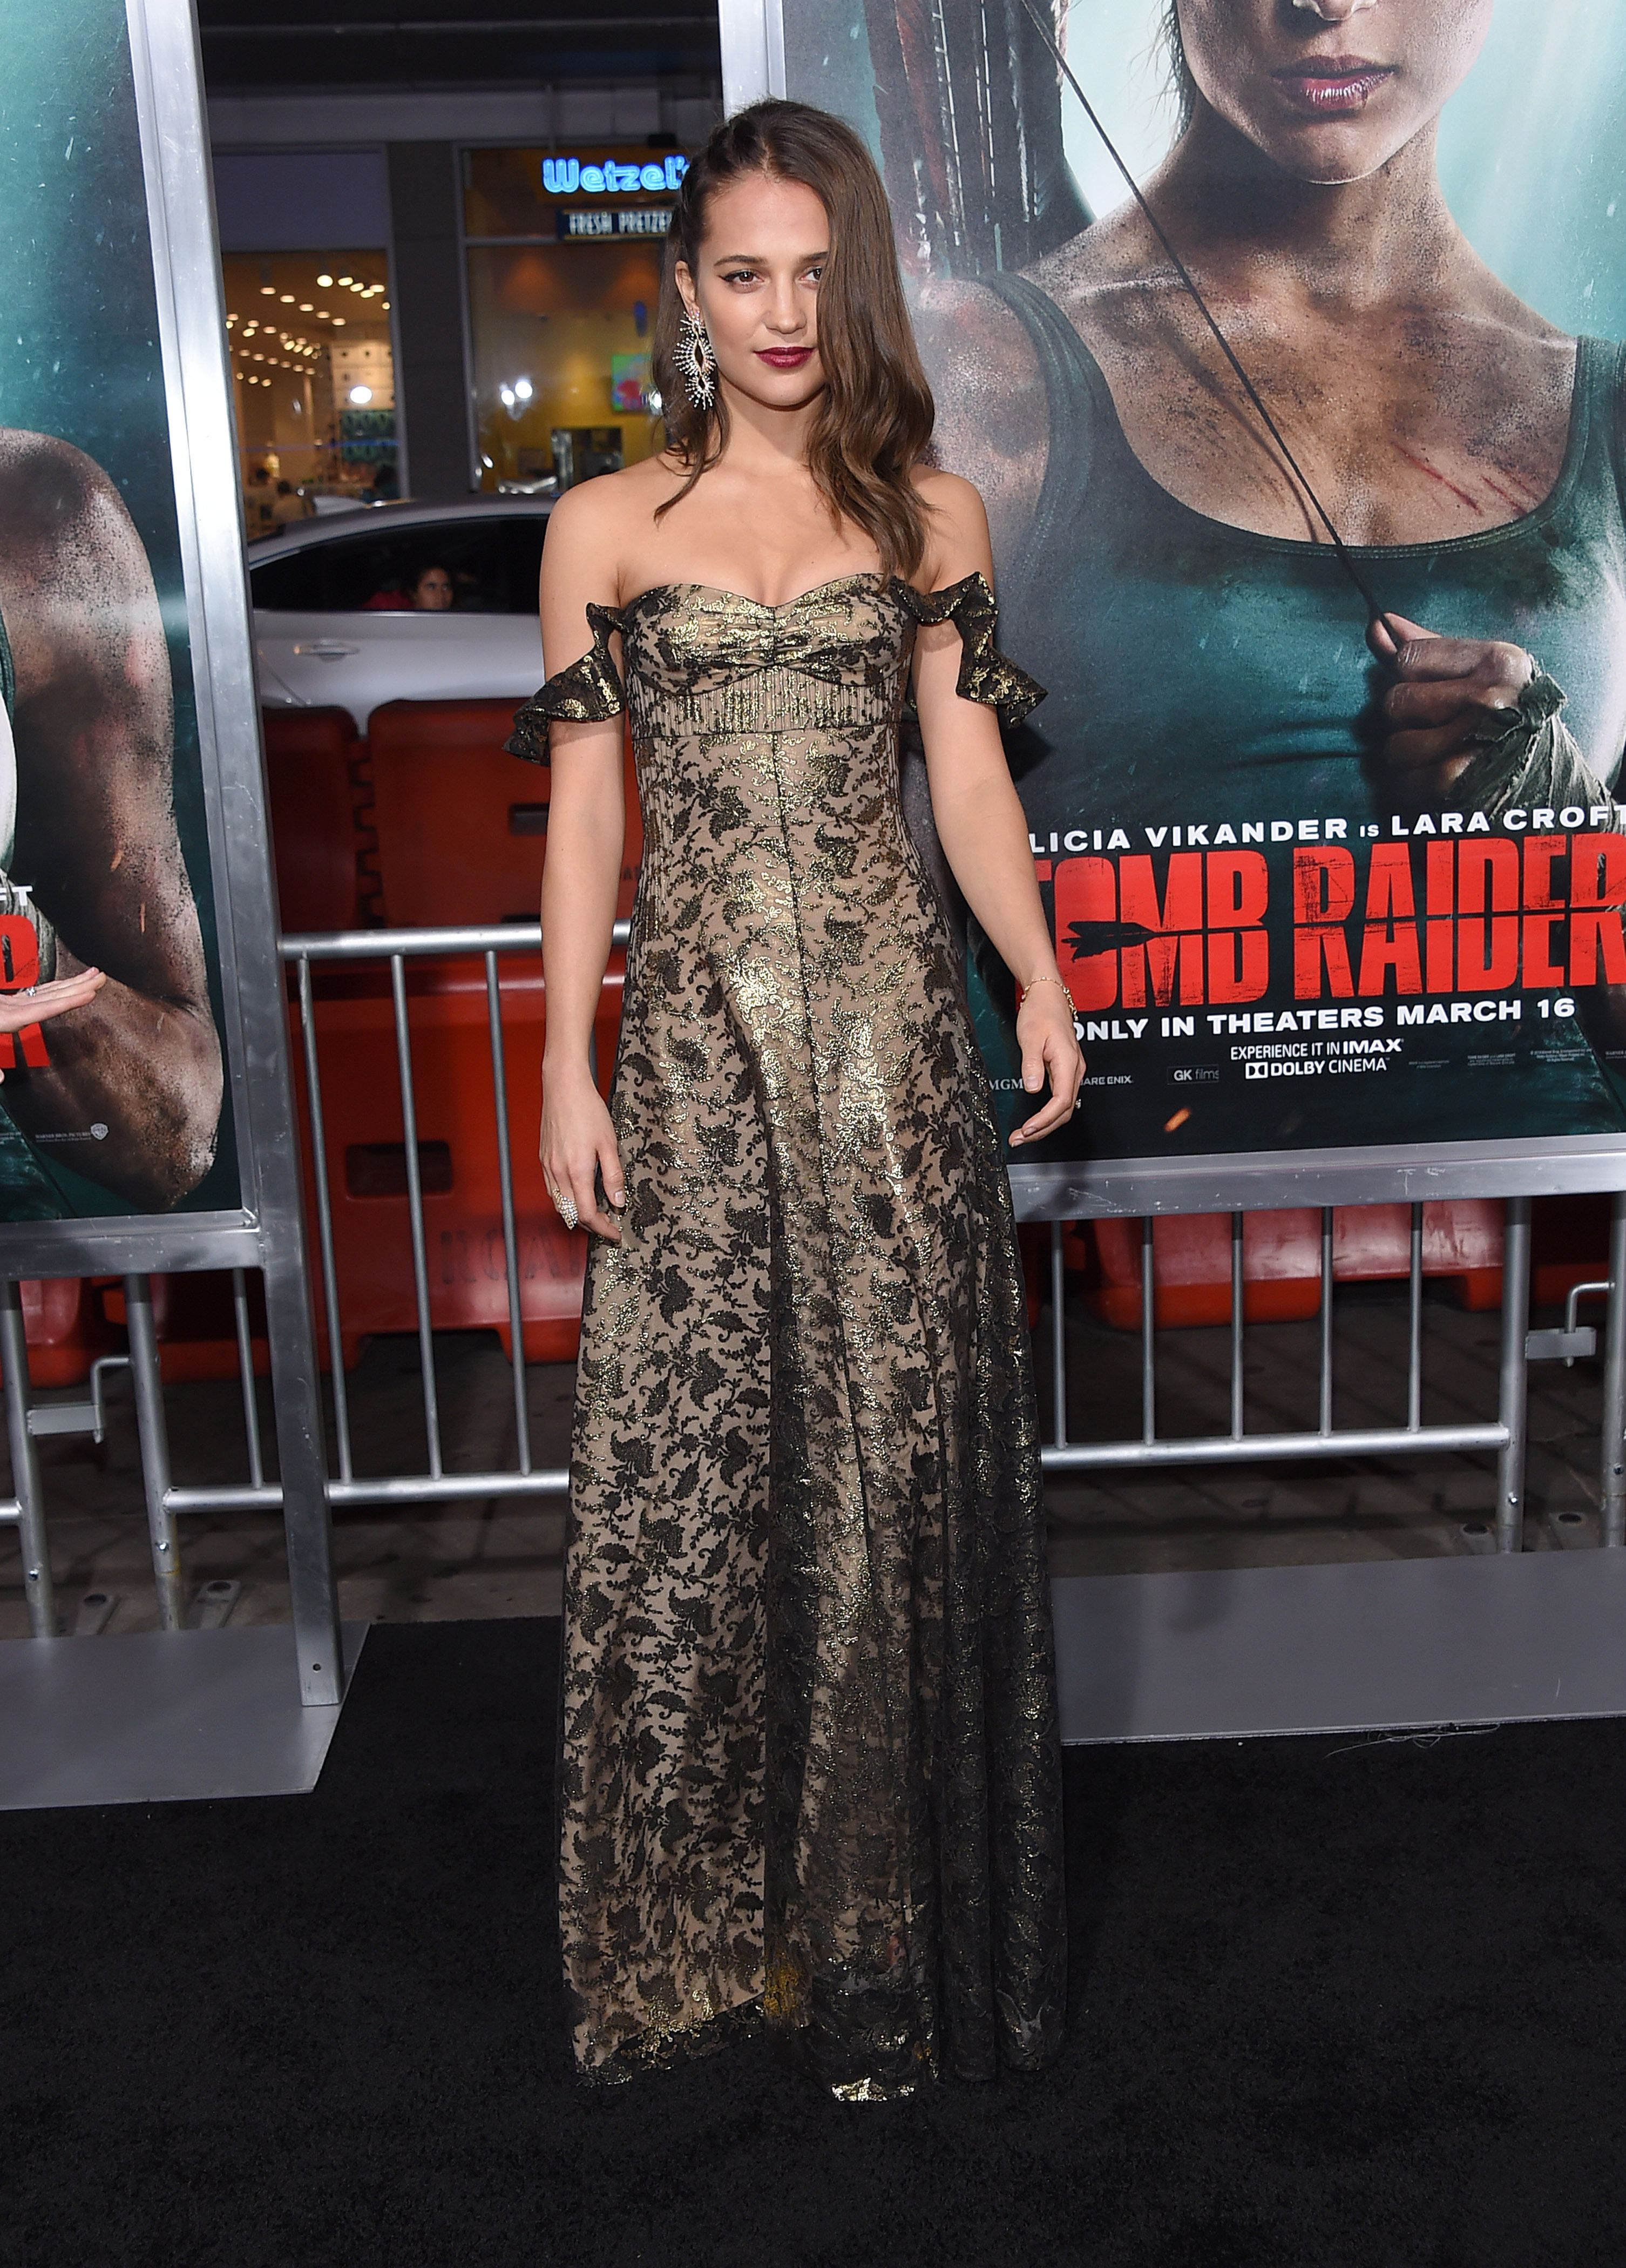 Alicia Vikander wears a printed dress in front of her 'Tomb Raider' billboard.